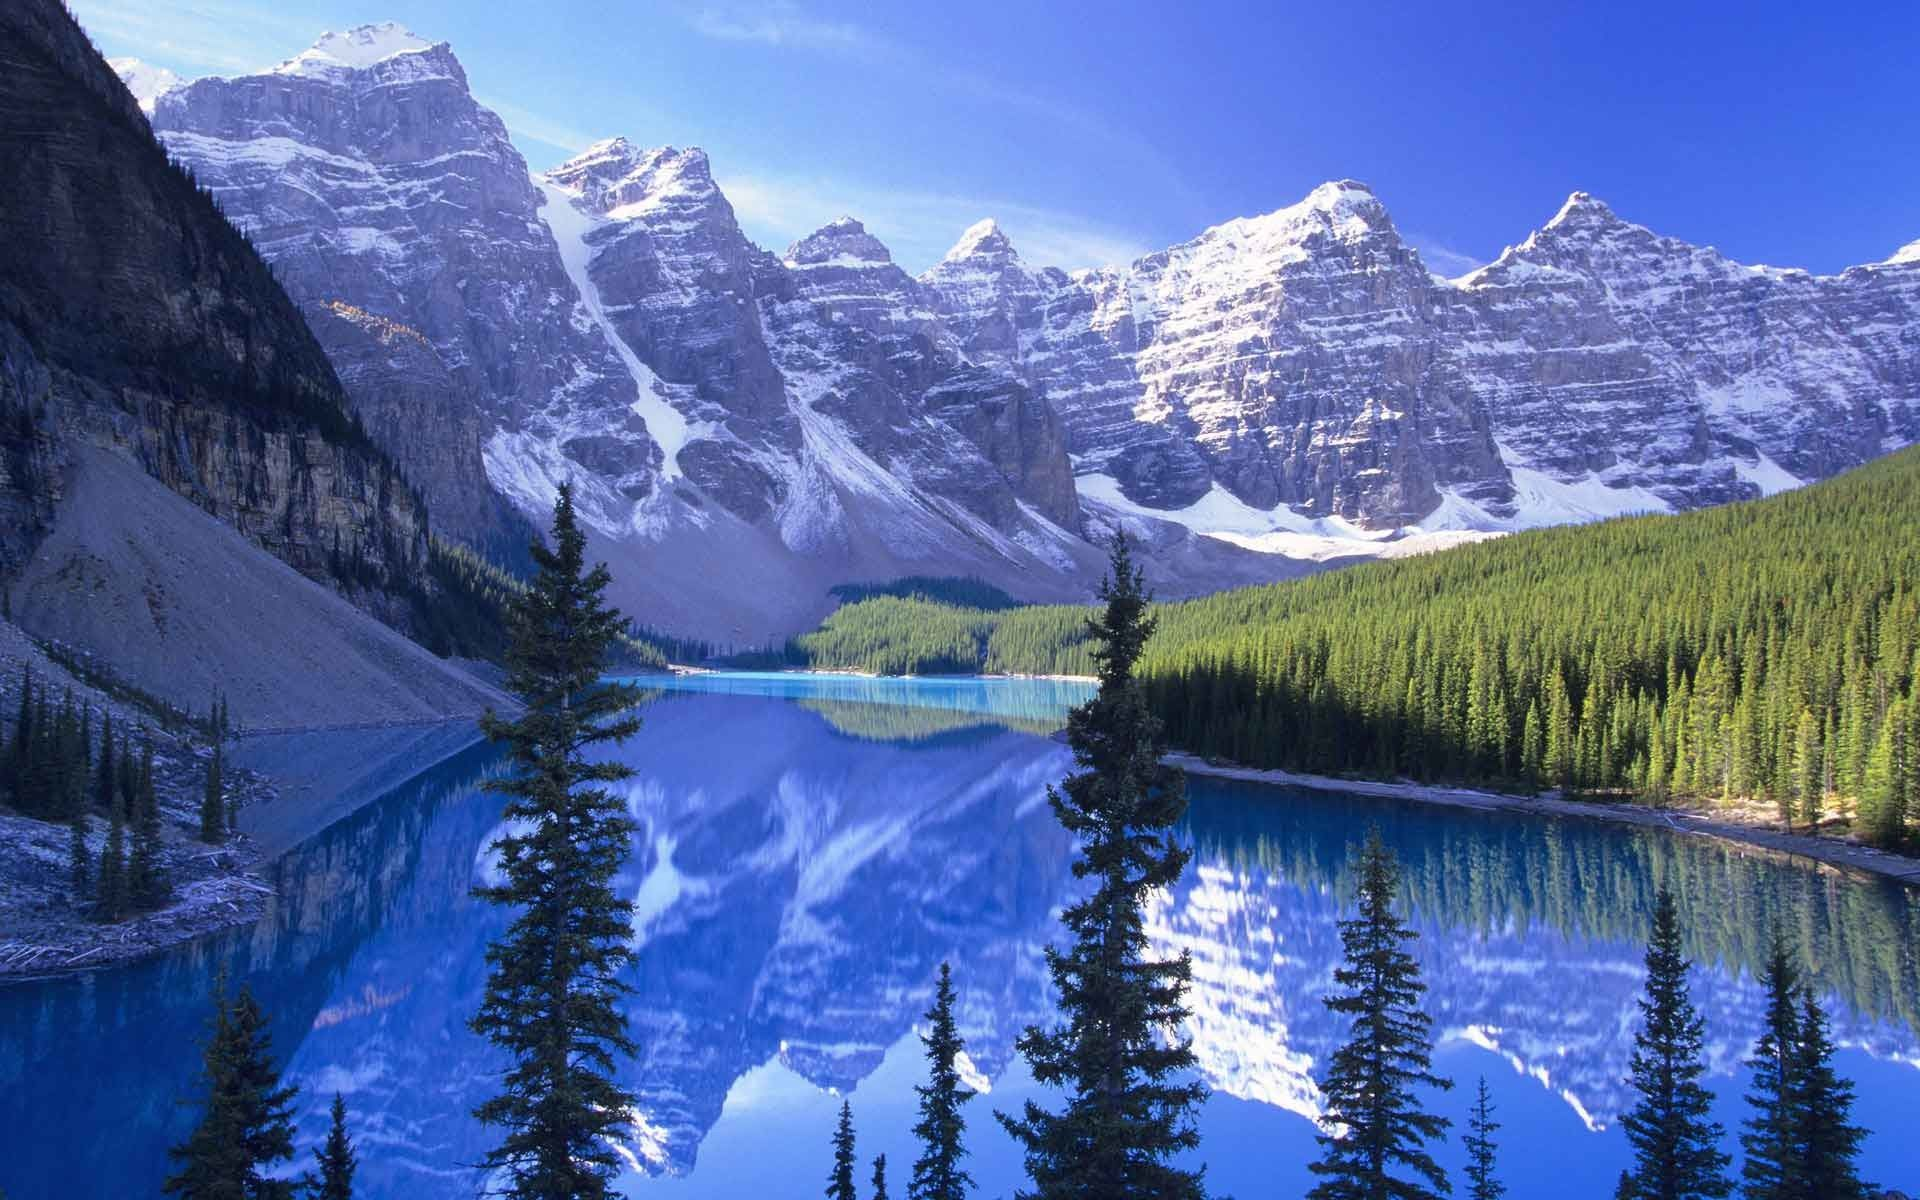 Windows Nature Wallpapers Top Free Windows Nature Backgrounds Wallpaperaccess